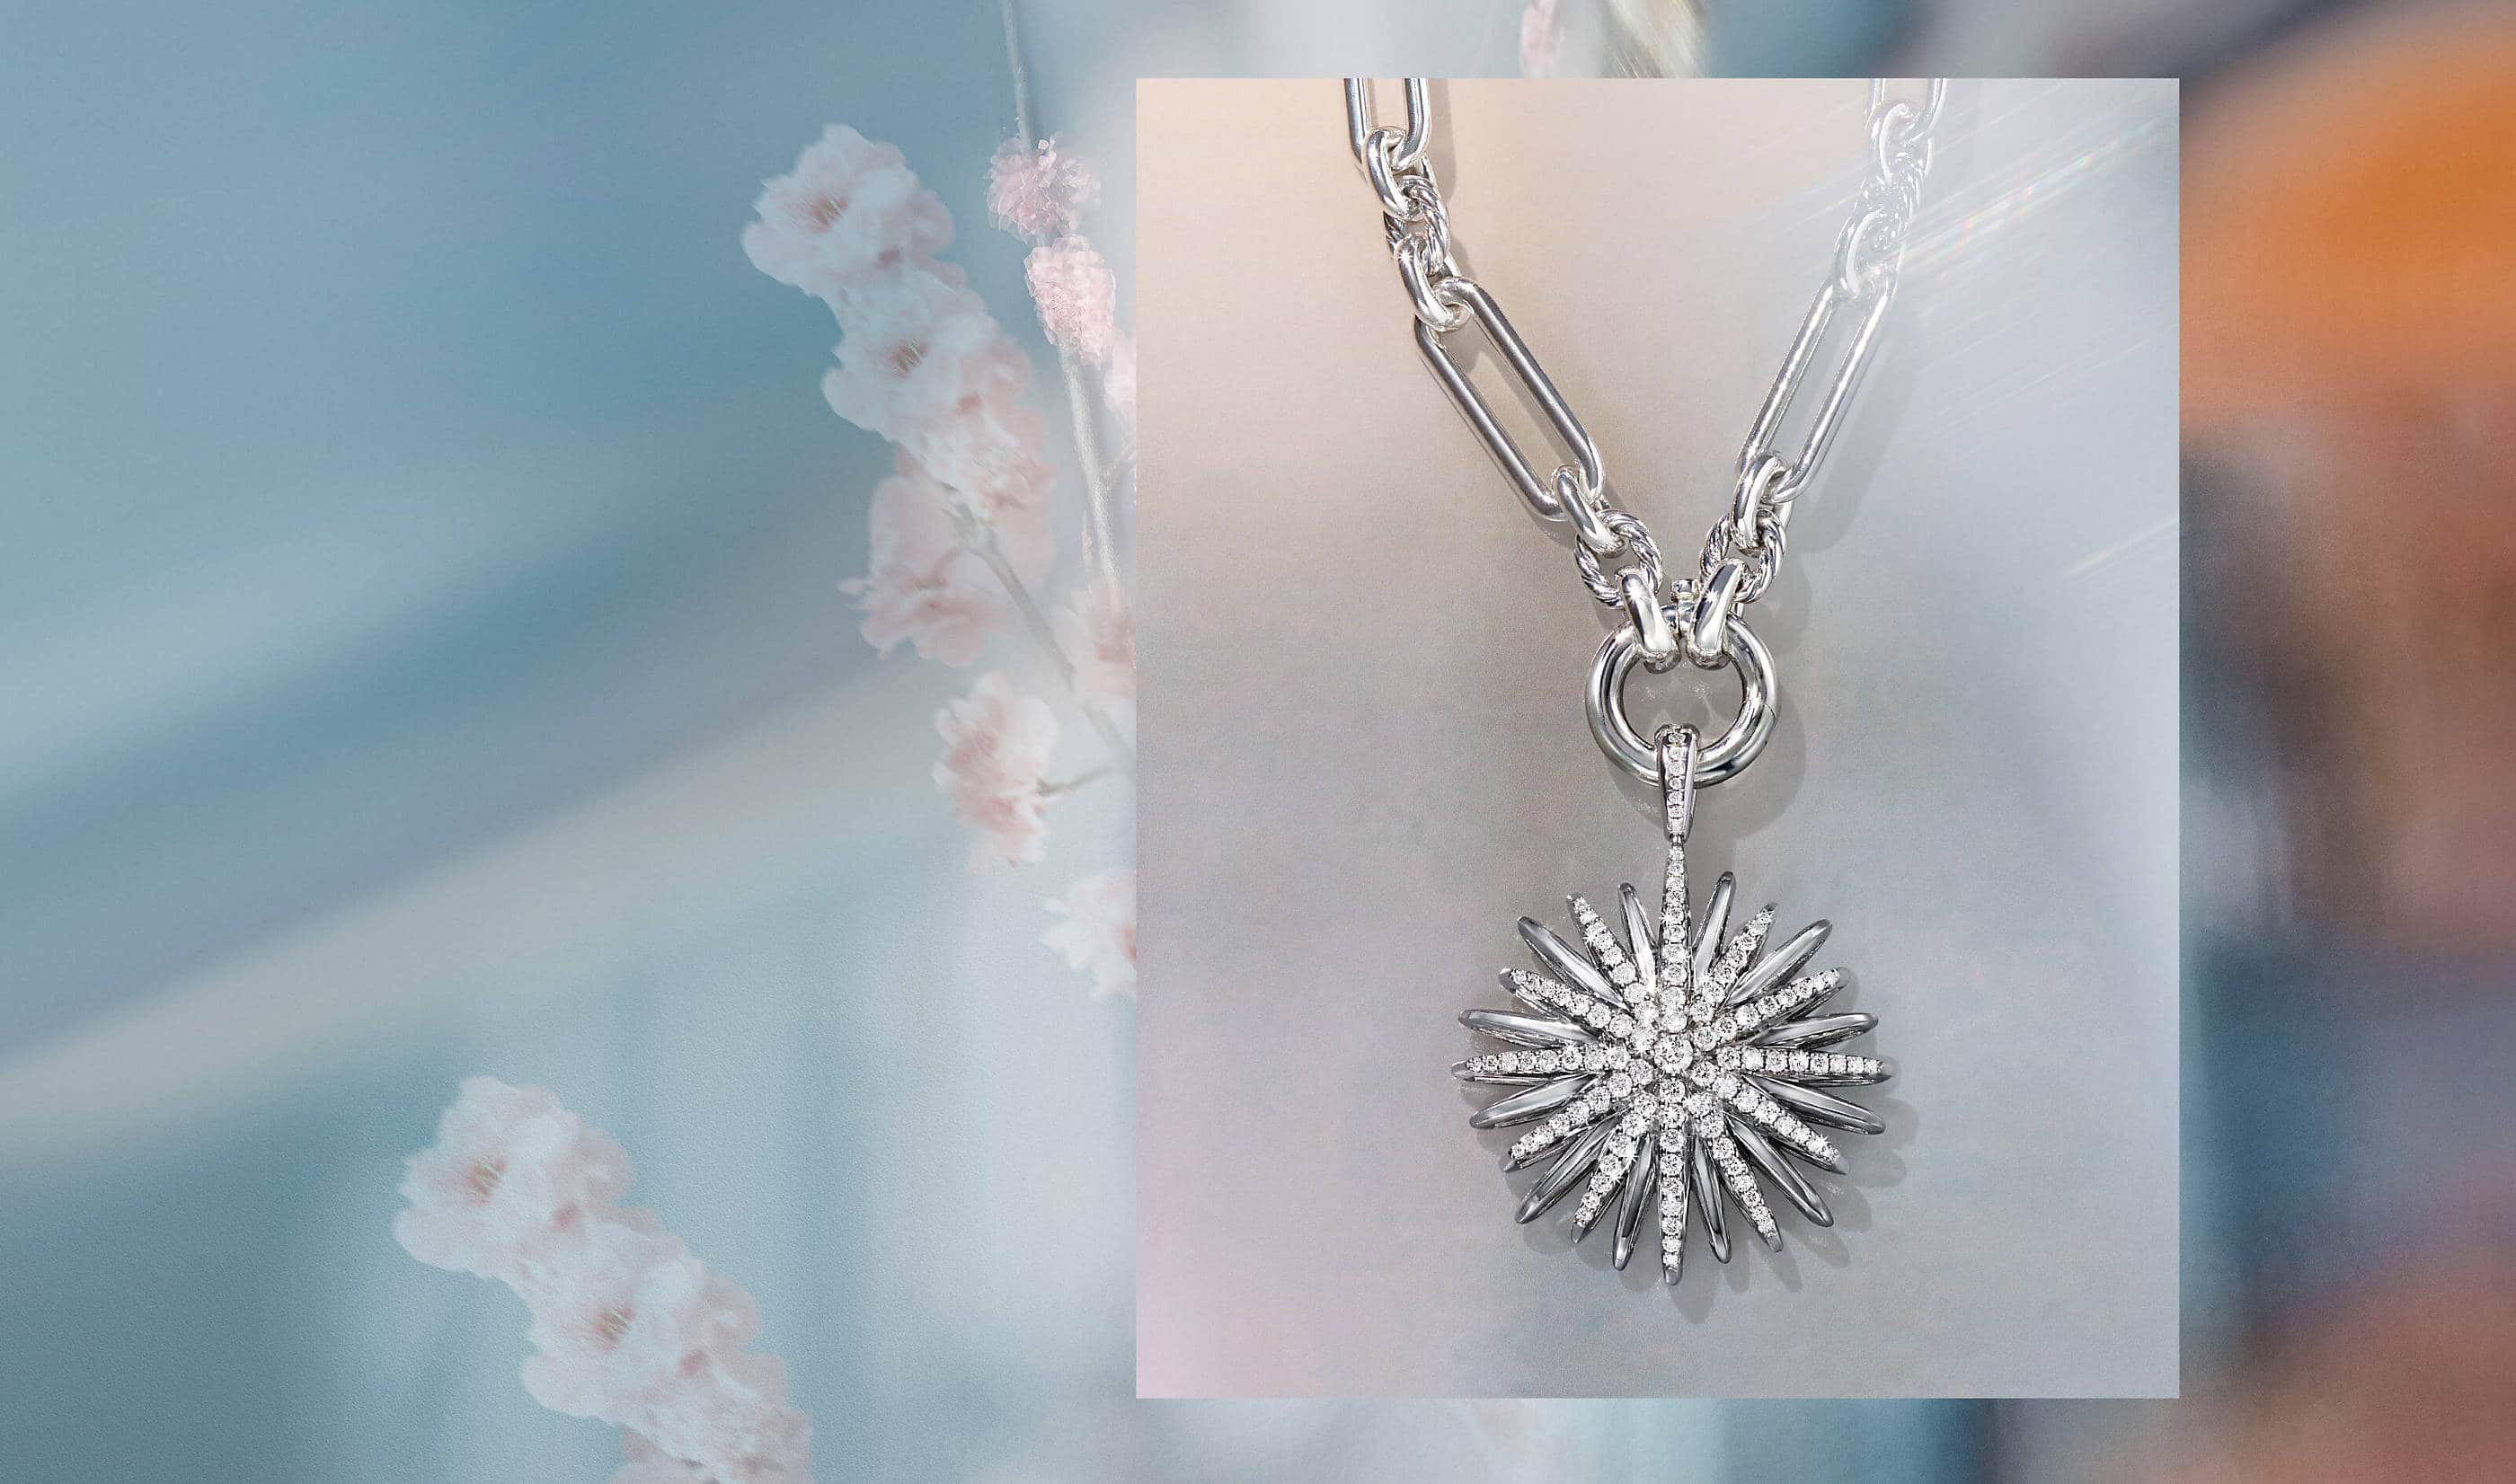 A color photo shows a close-up shot of a David Yurman Lexington chain with a Starburst pavé diamond enhancer hanging in front of an opalescent background. The jewelry is crafted from sterling silver.